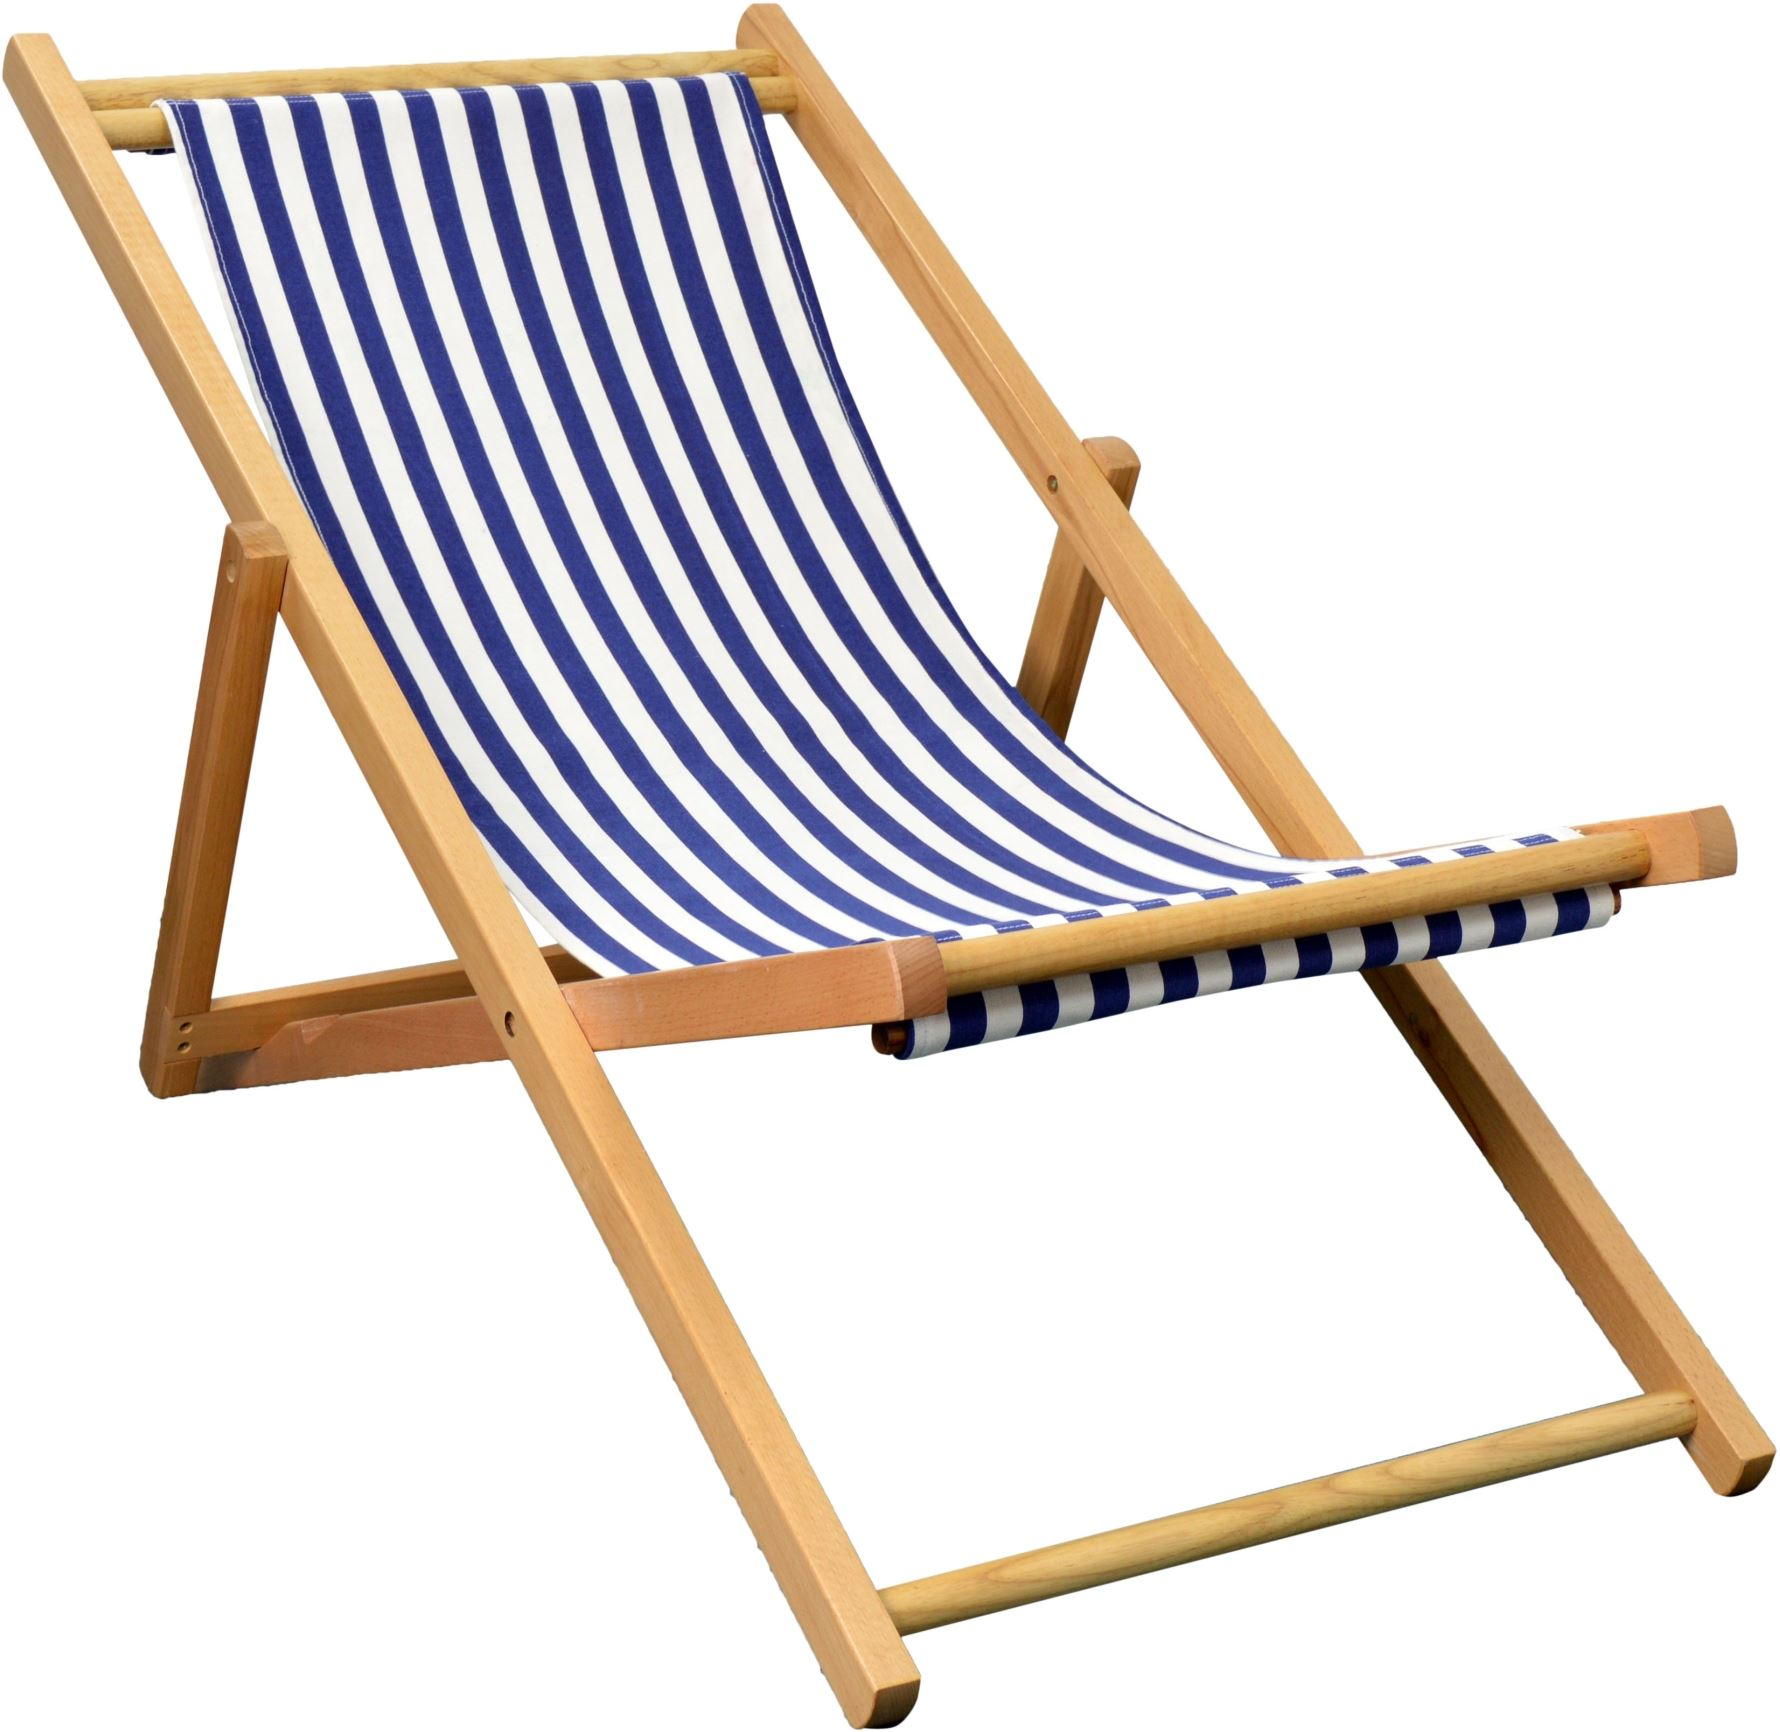 how to make a wooden beach chair wingback covers for sale folding deckchair garden seaside deck